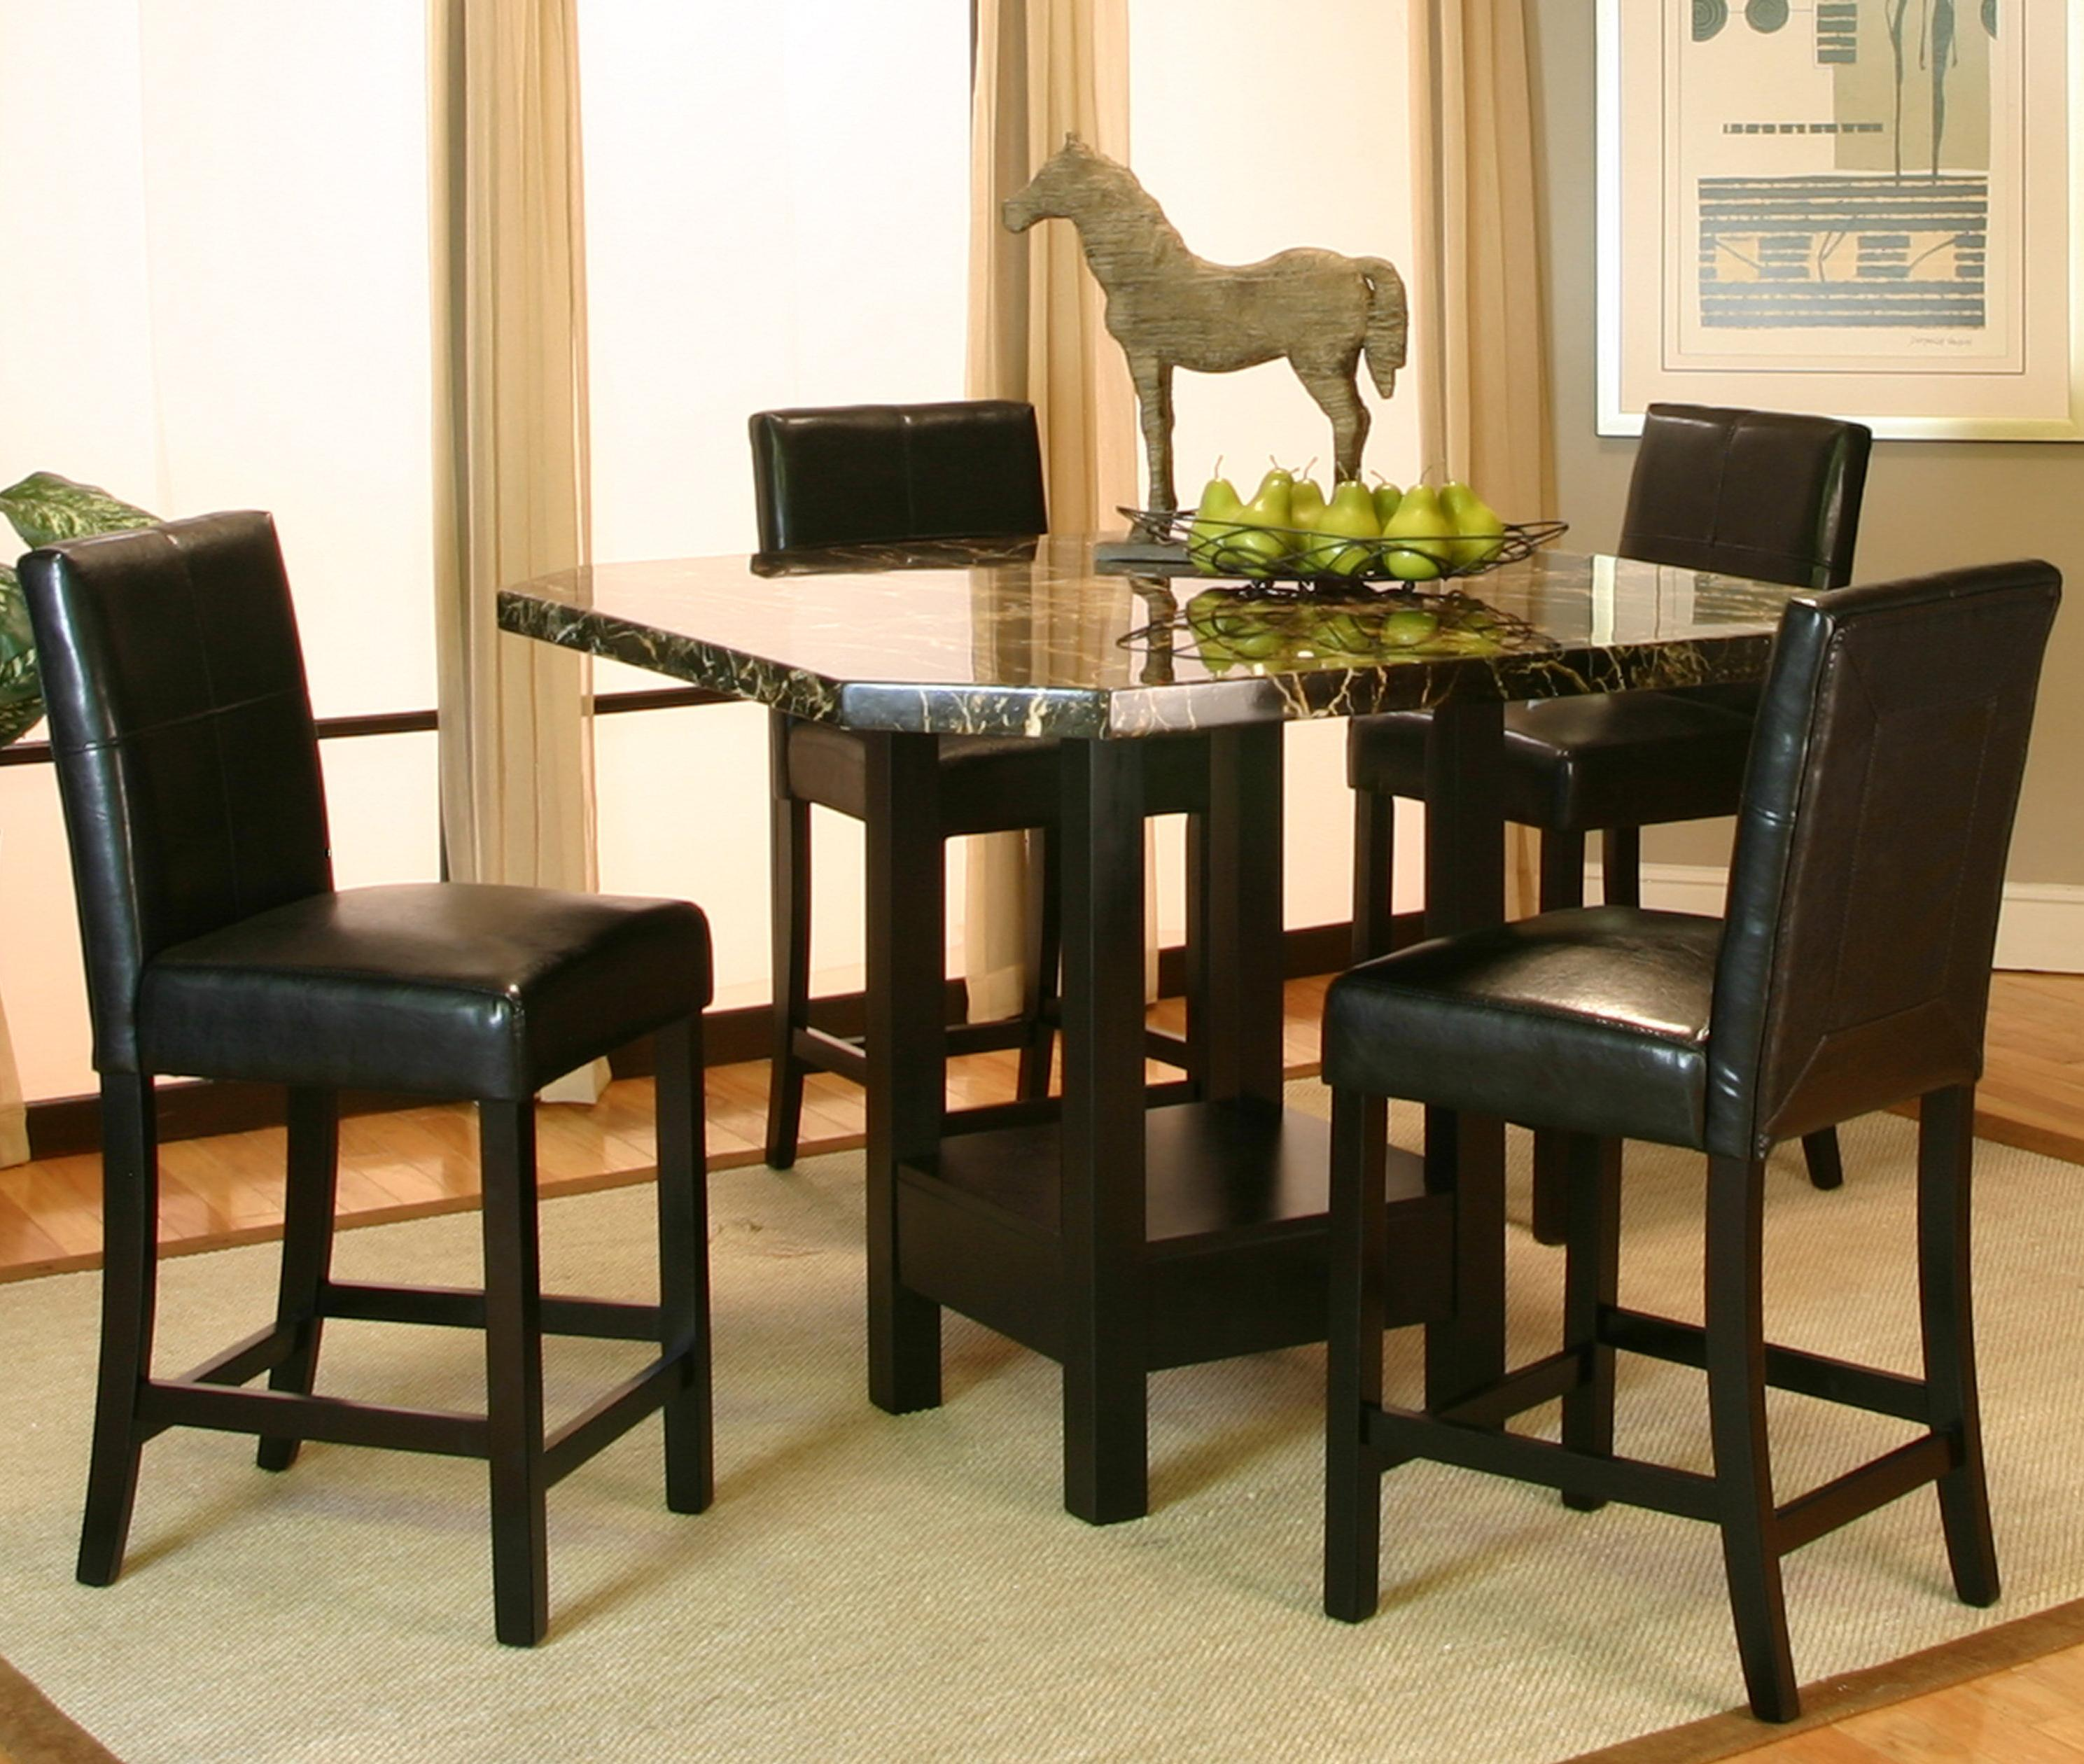 Kitchen pub table and chairs - Cramco Inc Chatham Square Clipped Corner Pub Table W Faux Marble Top Wayside Furniture Pub Table